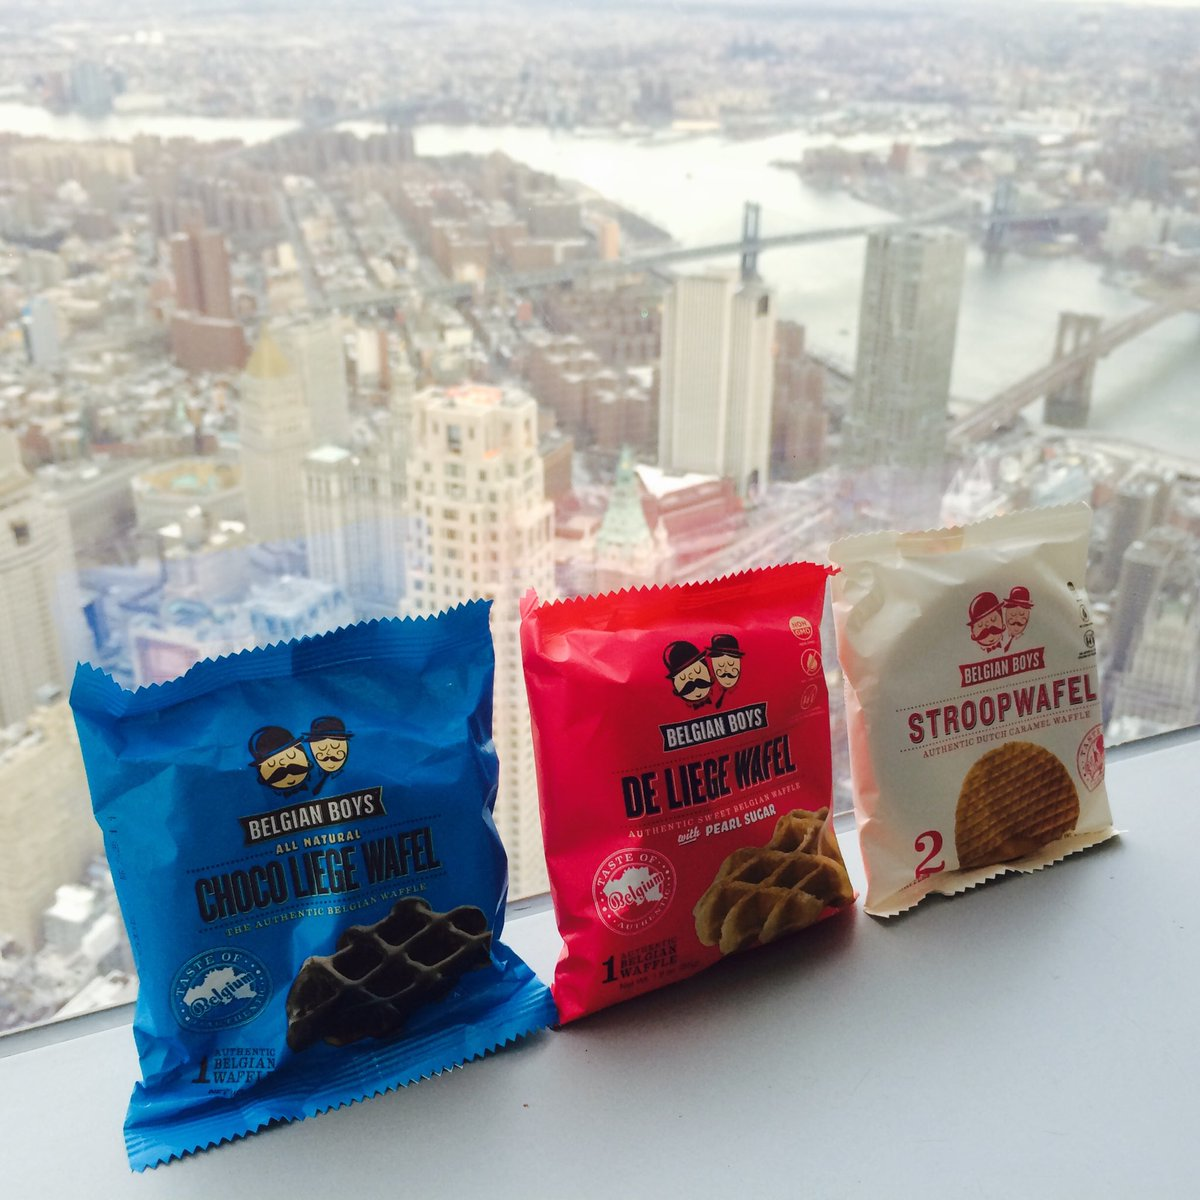 From the top of the world to your tastebuds! @lovewithfood #belgianboys #skinnyandchubby #deliege #stroopwafel #NYC<br>http://pic.twitter.com/iCbZTZ6EWs &ndash; à One World Trade Center